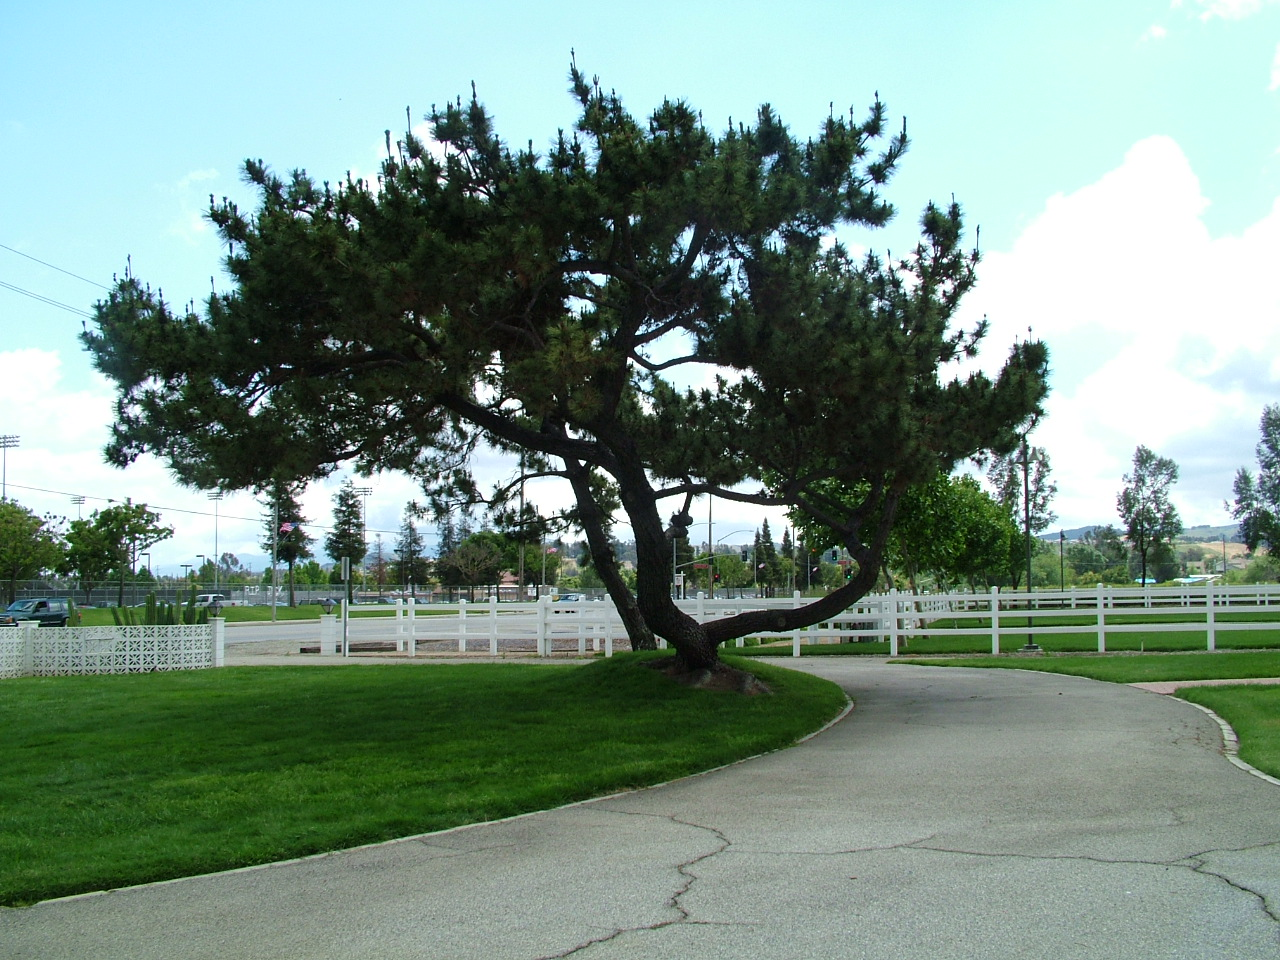 Photo of a charming tree in front of the McCoy residence